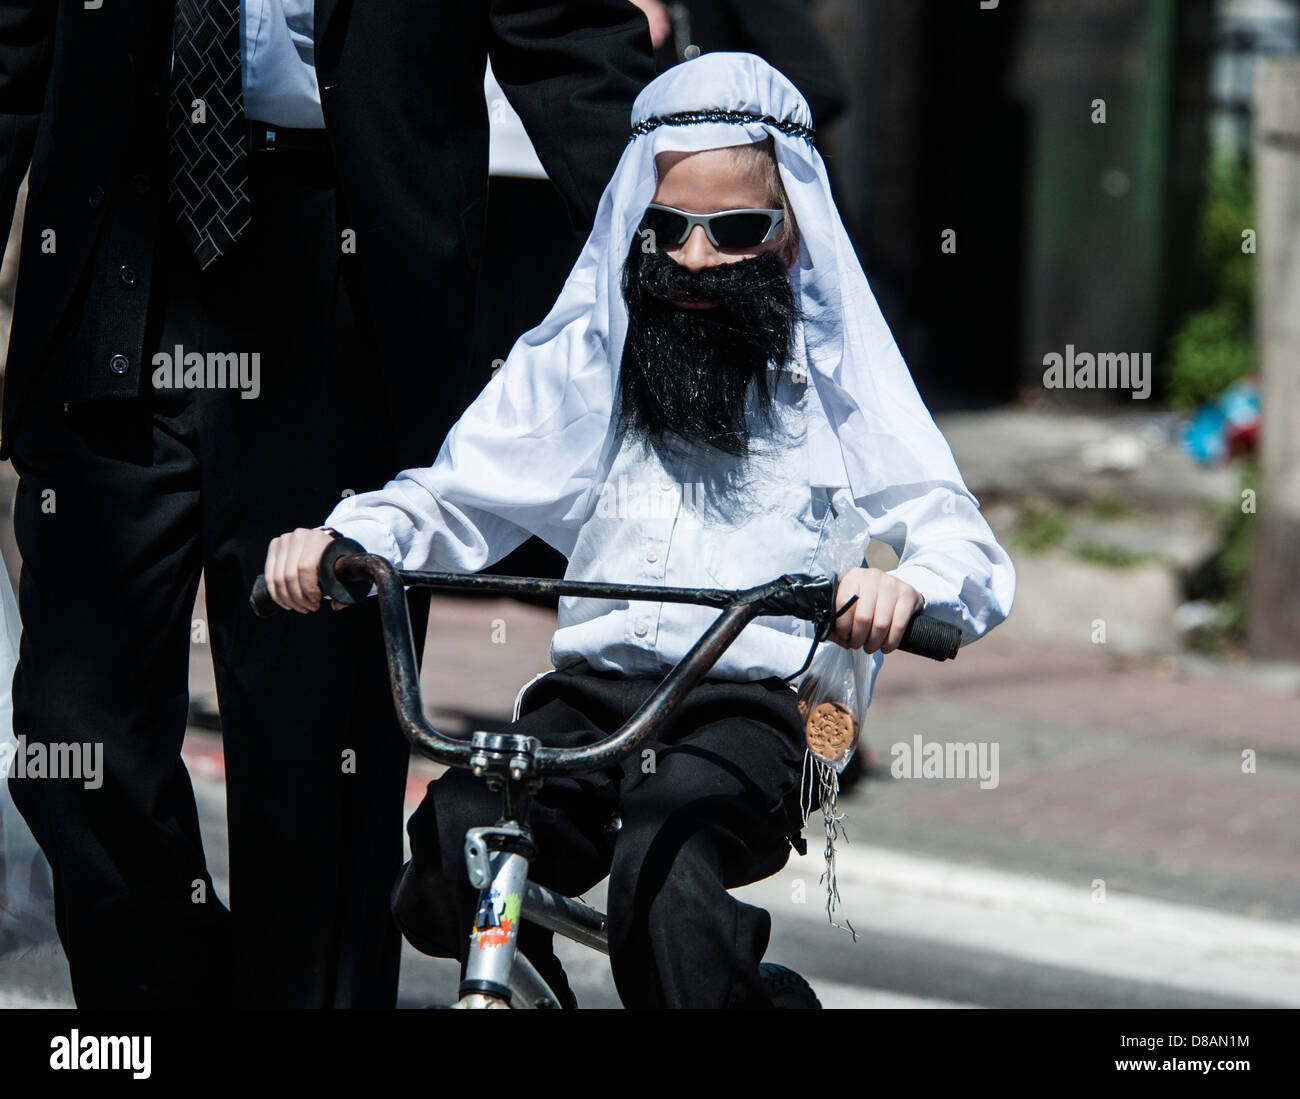 A young orthodox boy in Purim costume Photographed in Bnei Brak, Israel - Stock Image